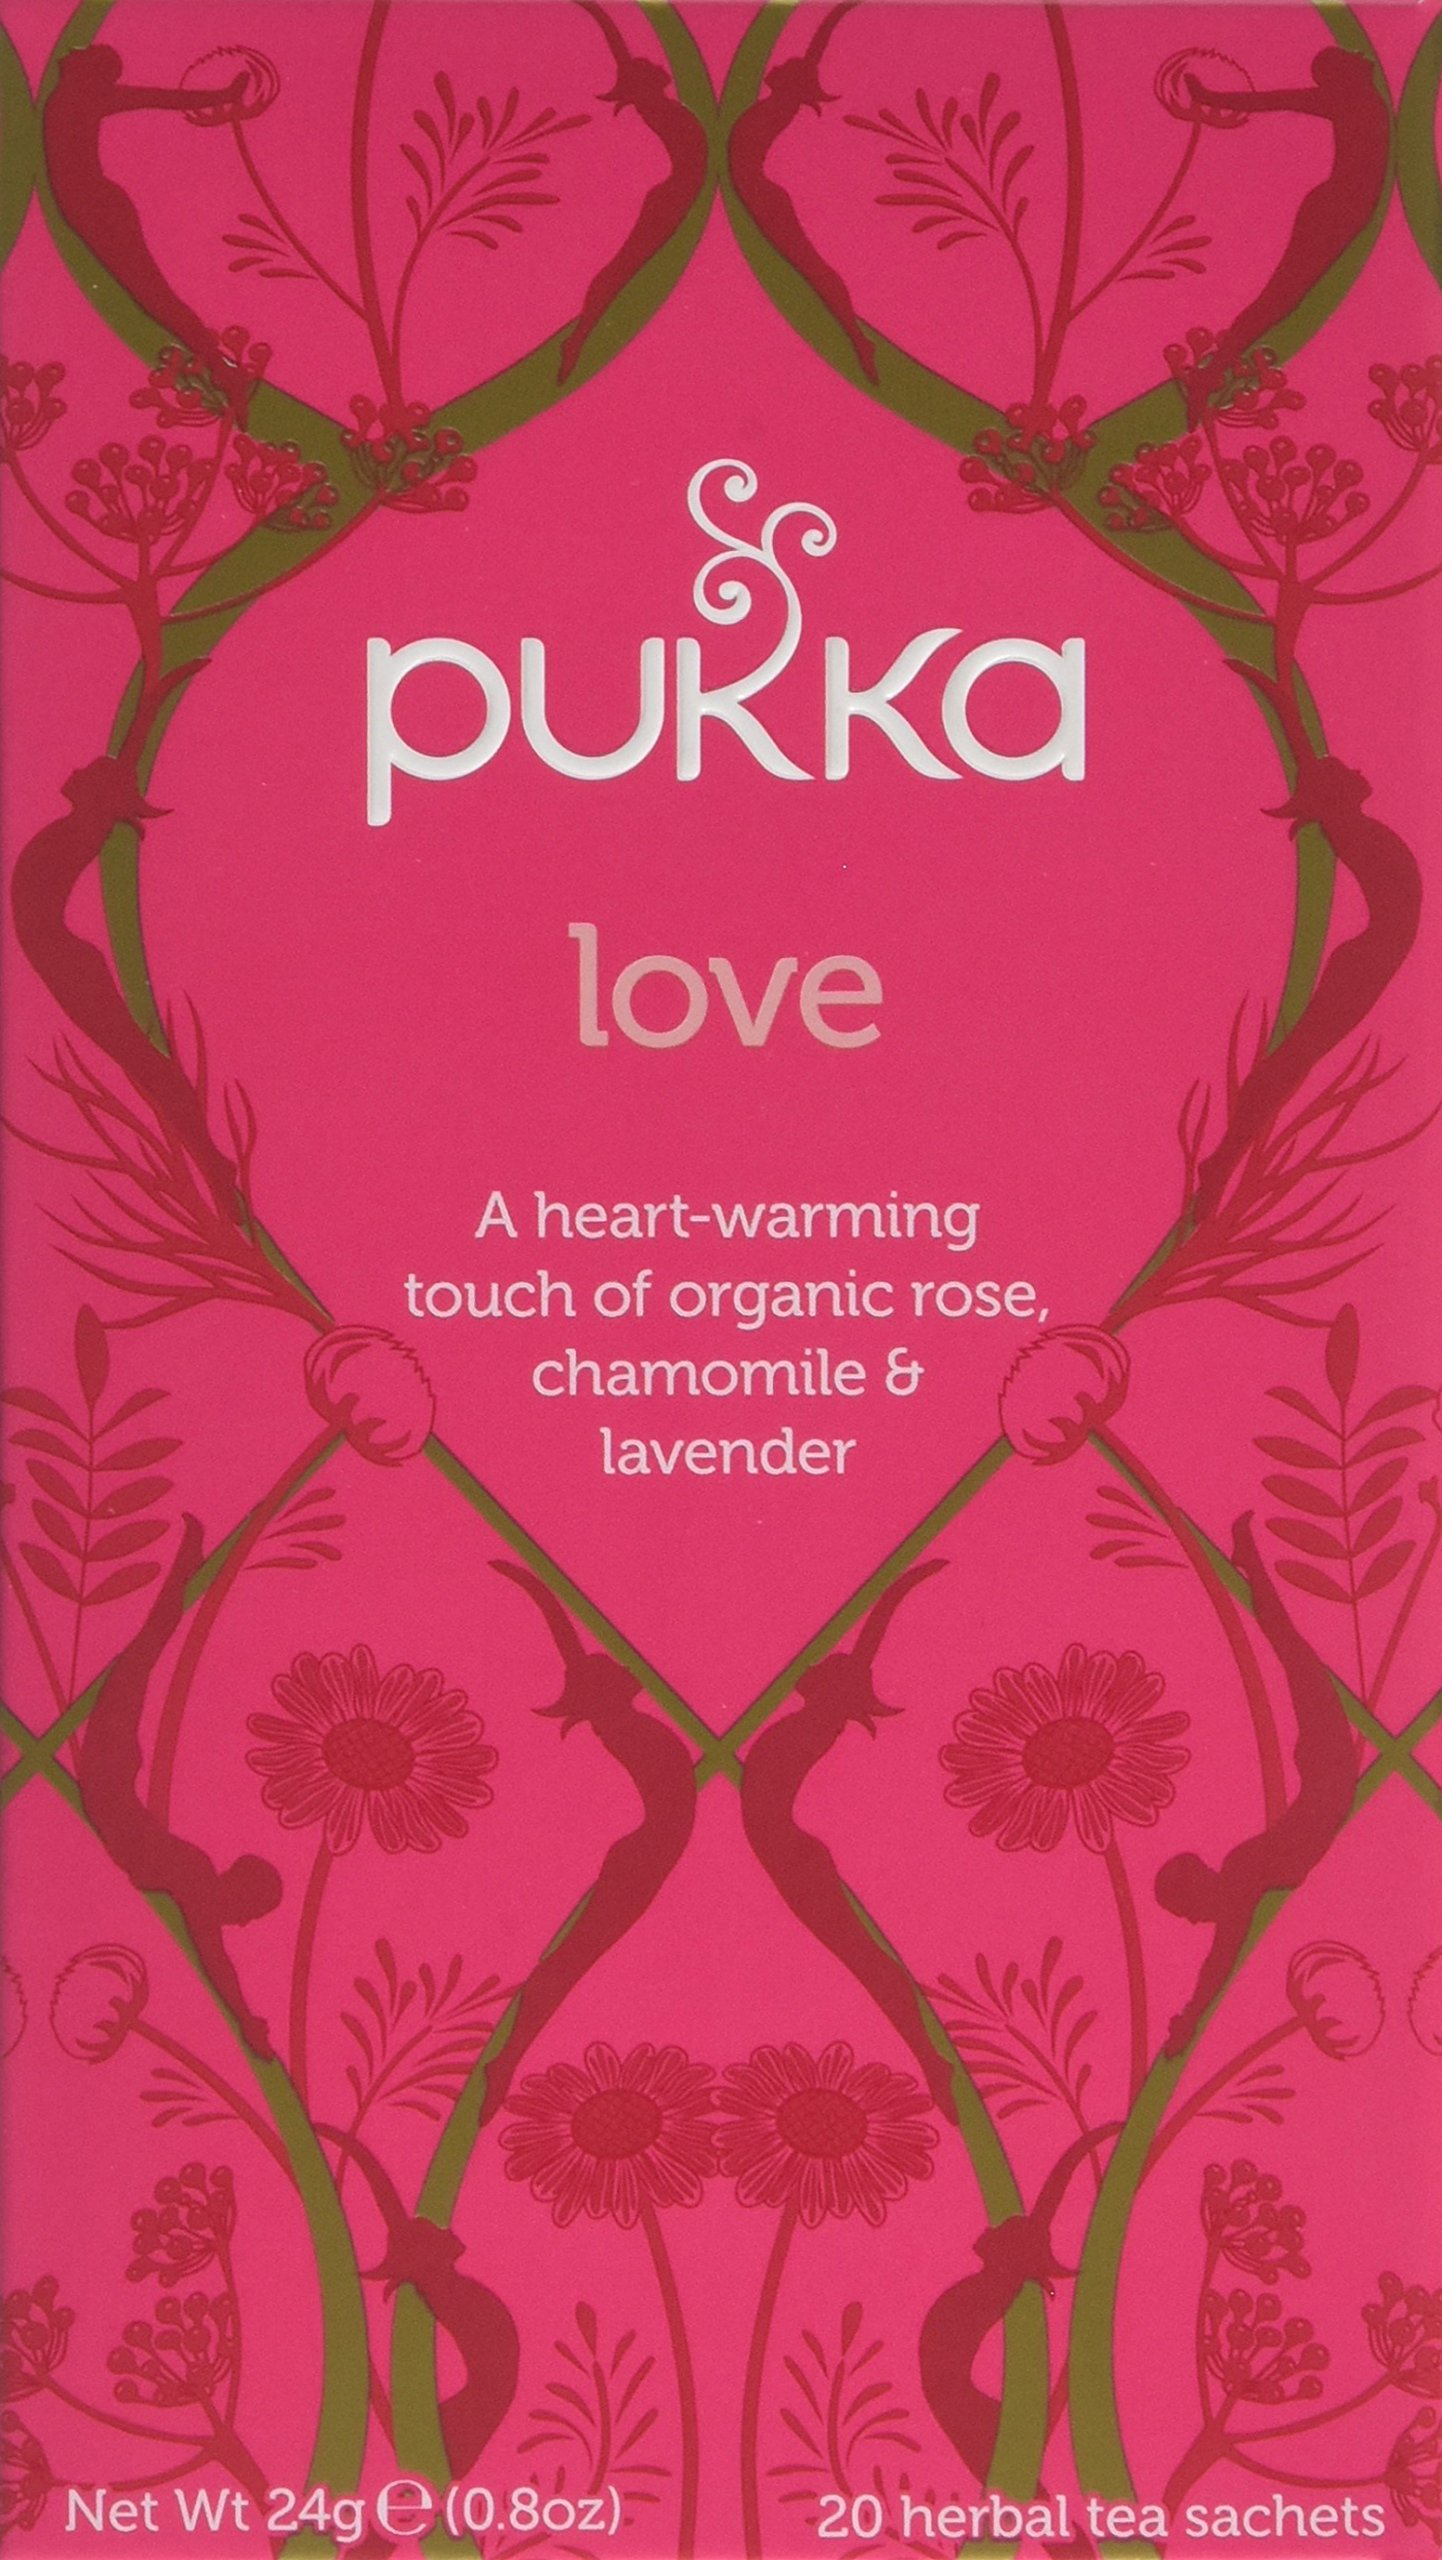 Pukka relax range tea bundle (soil association) (infusions) (4 packs of 20 bags) (80 bags) (a floral tea with aromas of camomile, elderflower, lavender, lime flower, liquorice, marigold) (brews in up to 15 min)